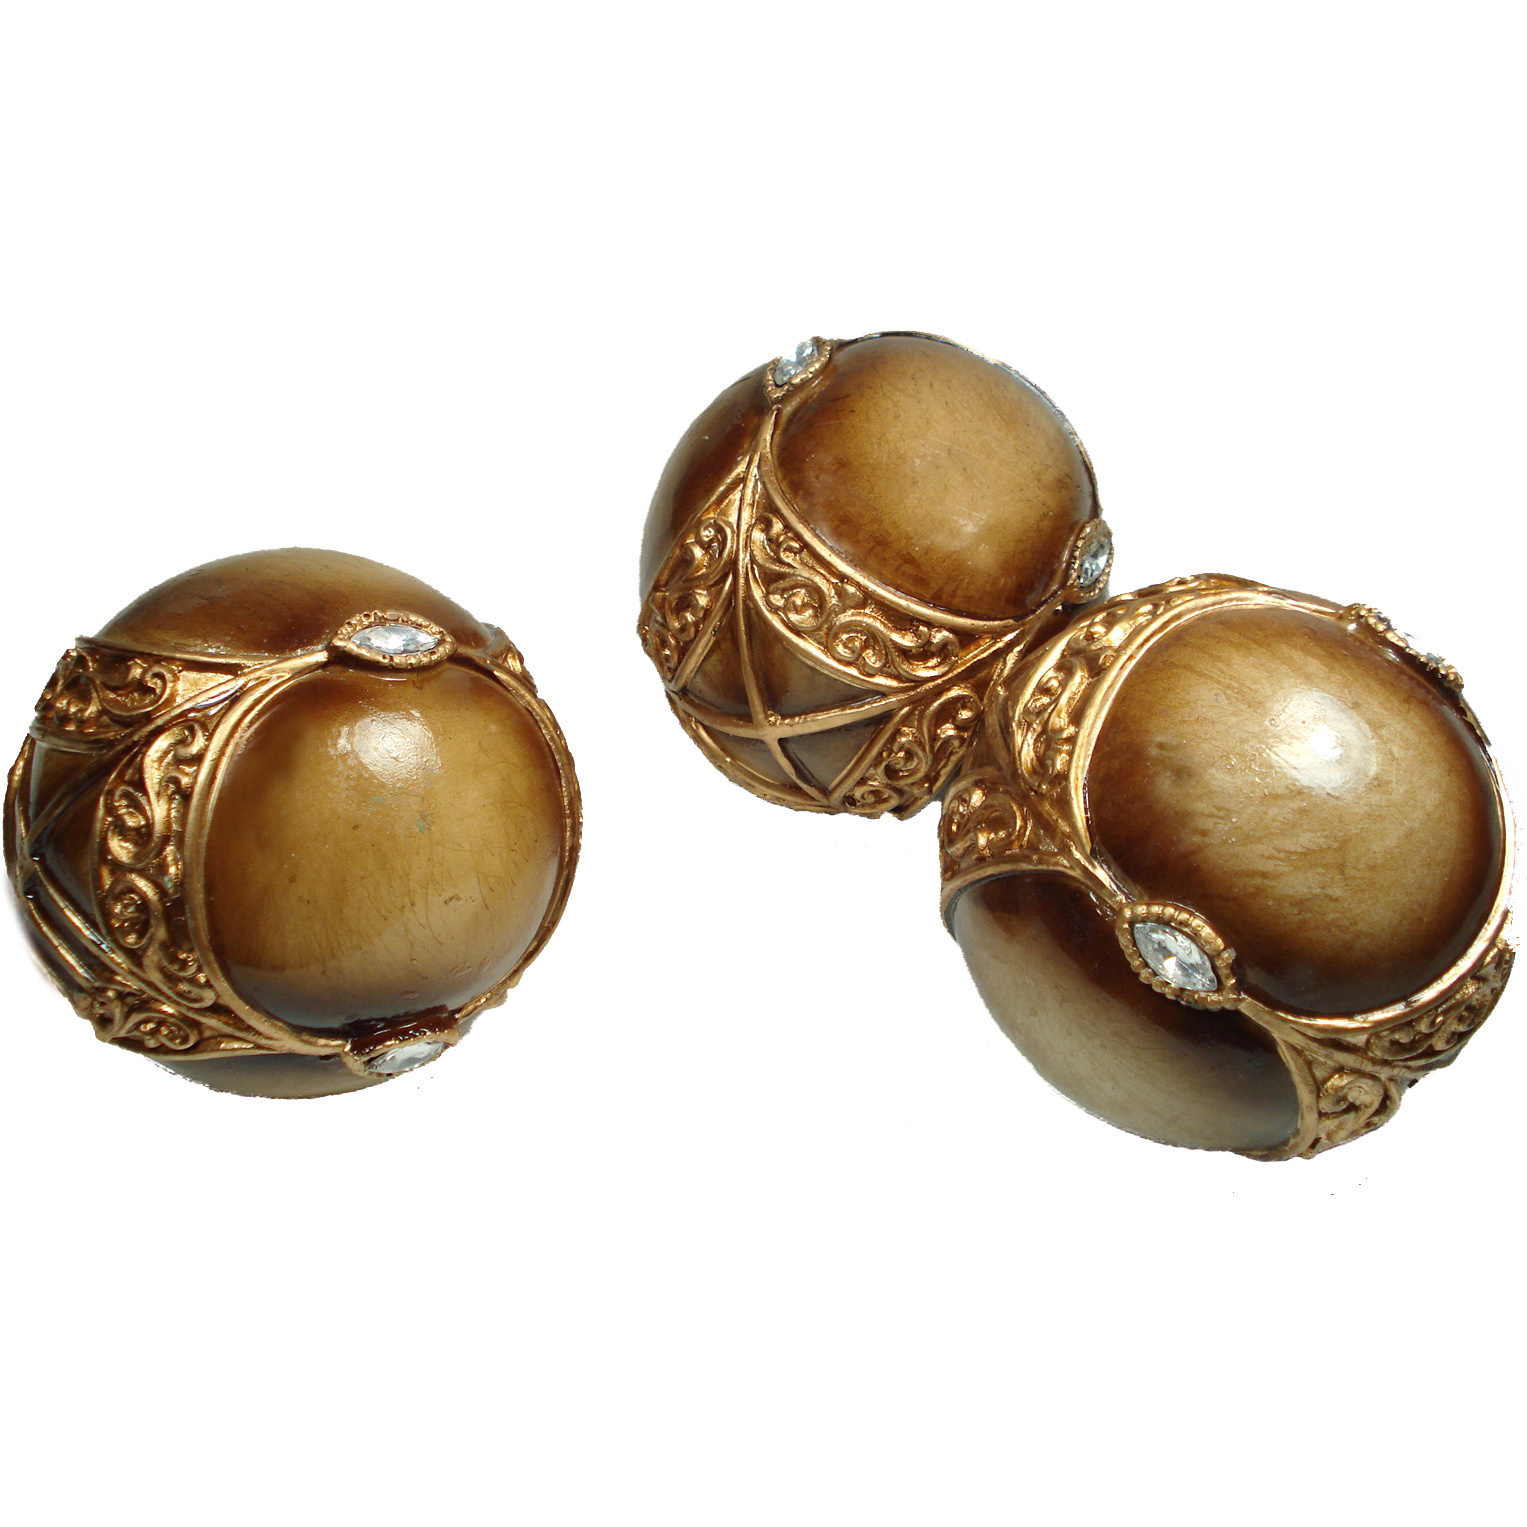 golden decorative orbs with crystal ornament for luxury table accessories ideas